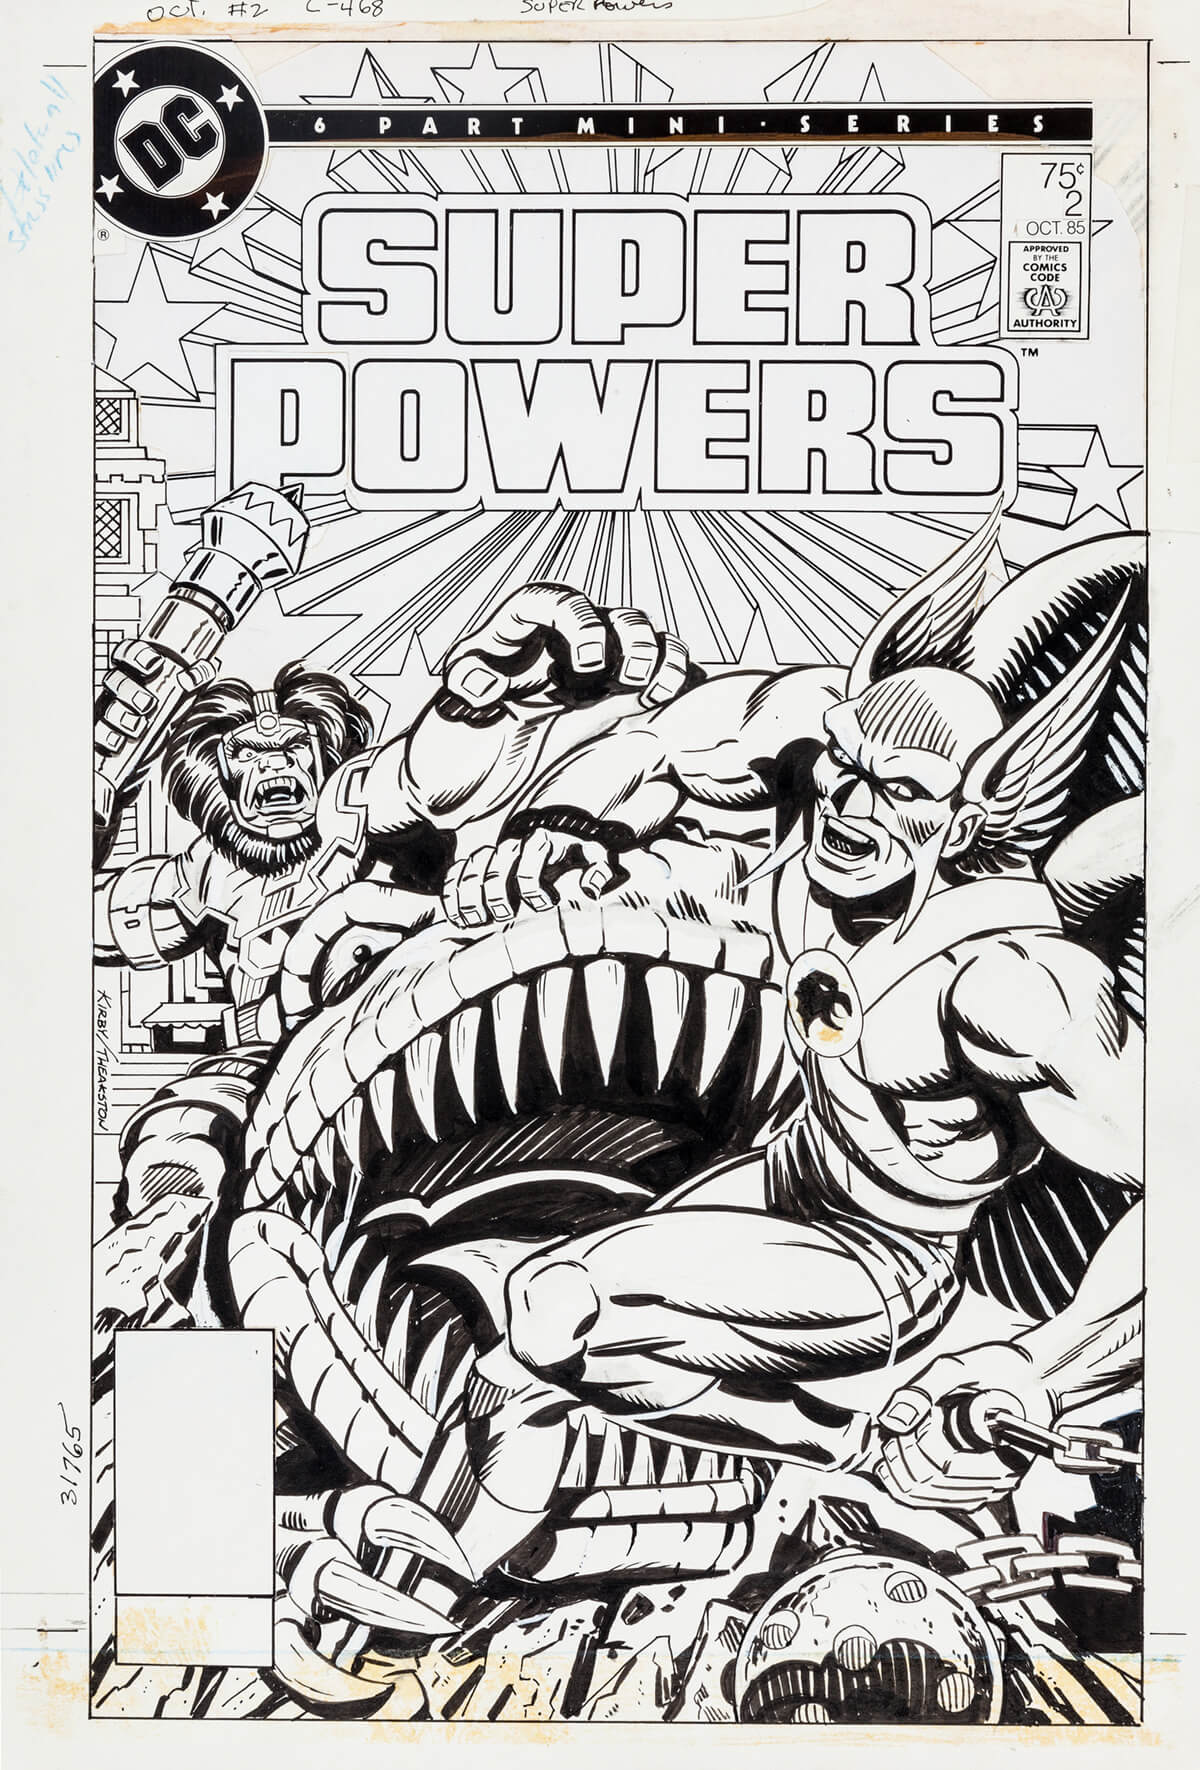 Super Powers 2 Cover by Jack Kirby and Grek Theakston